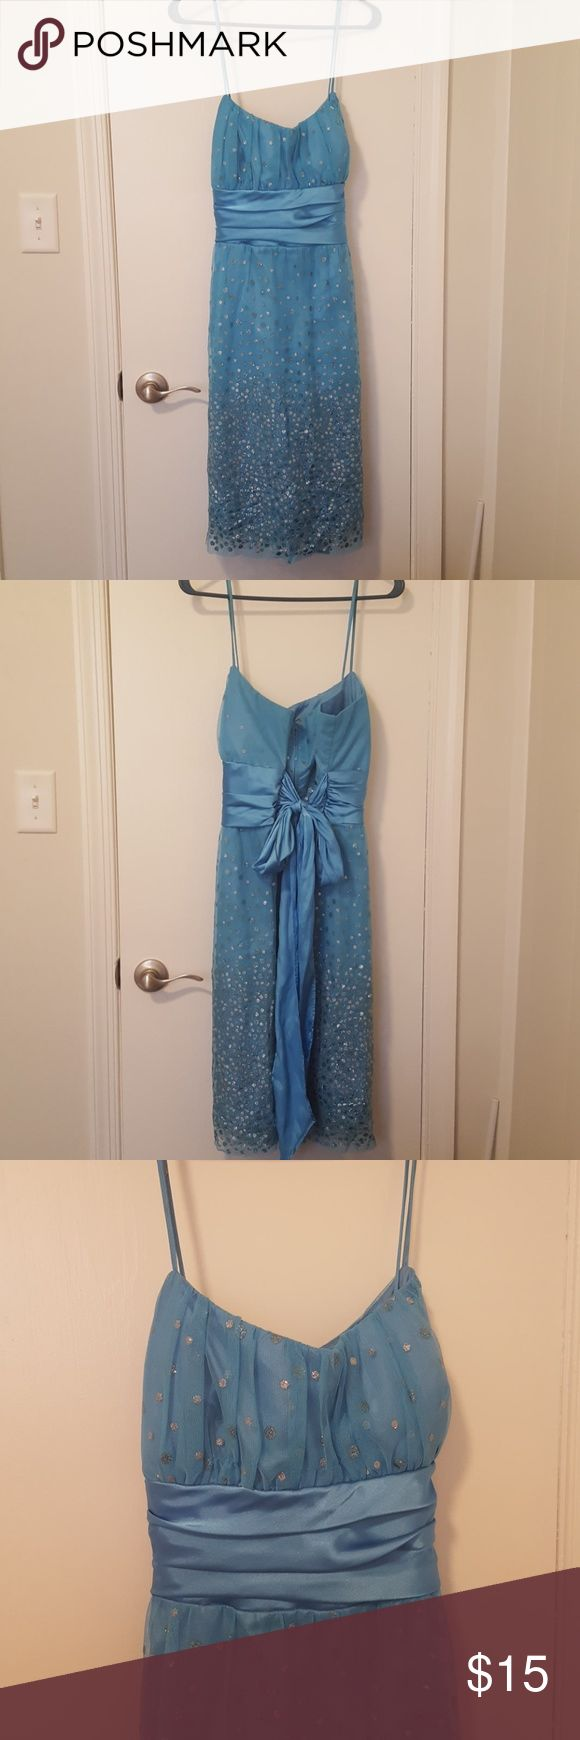 Formal Dress The dress is an aqua blue color with a silver & blue glitter polka dot overlay. It has a ruched detail waist that wraps around and ties in the back. It has a zipper closure. Masquerade Dresses Prom